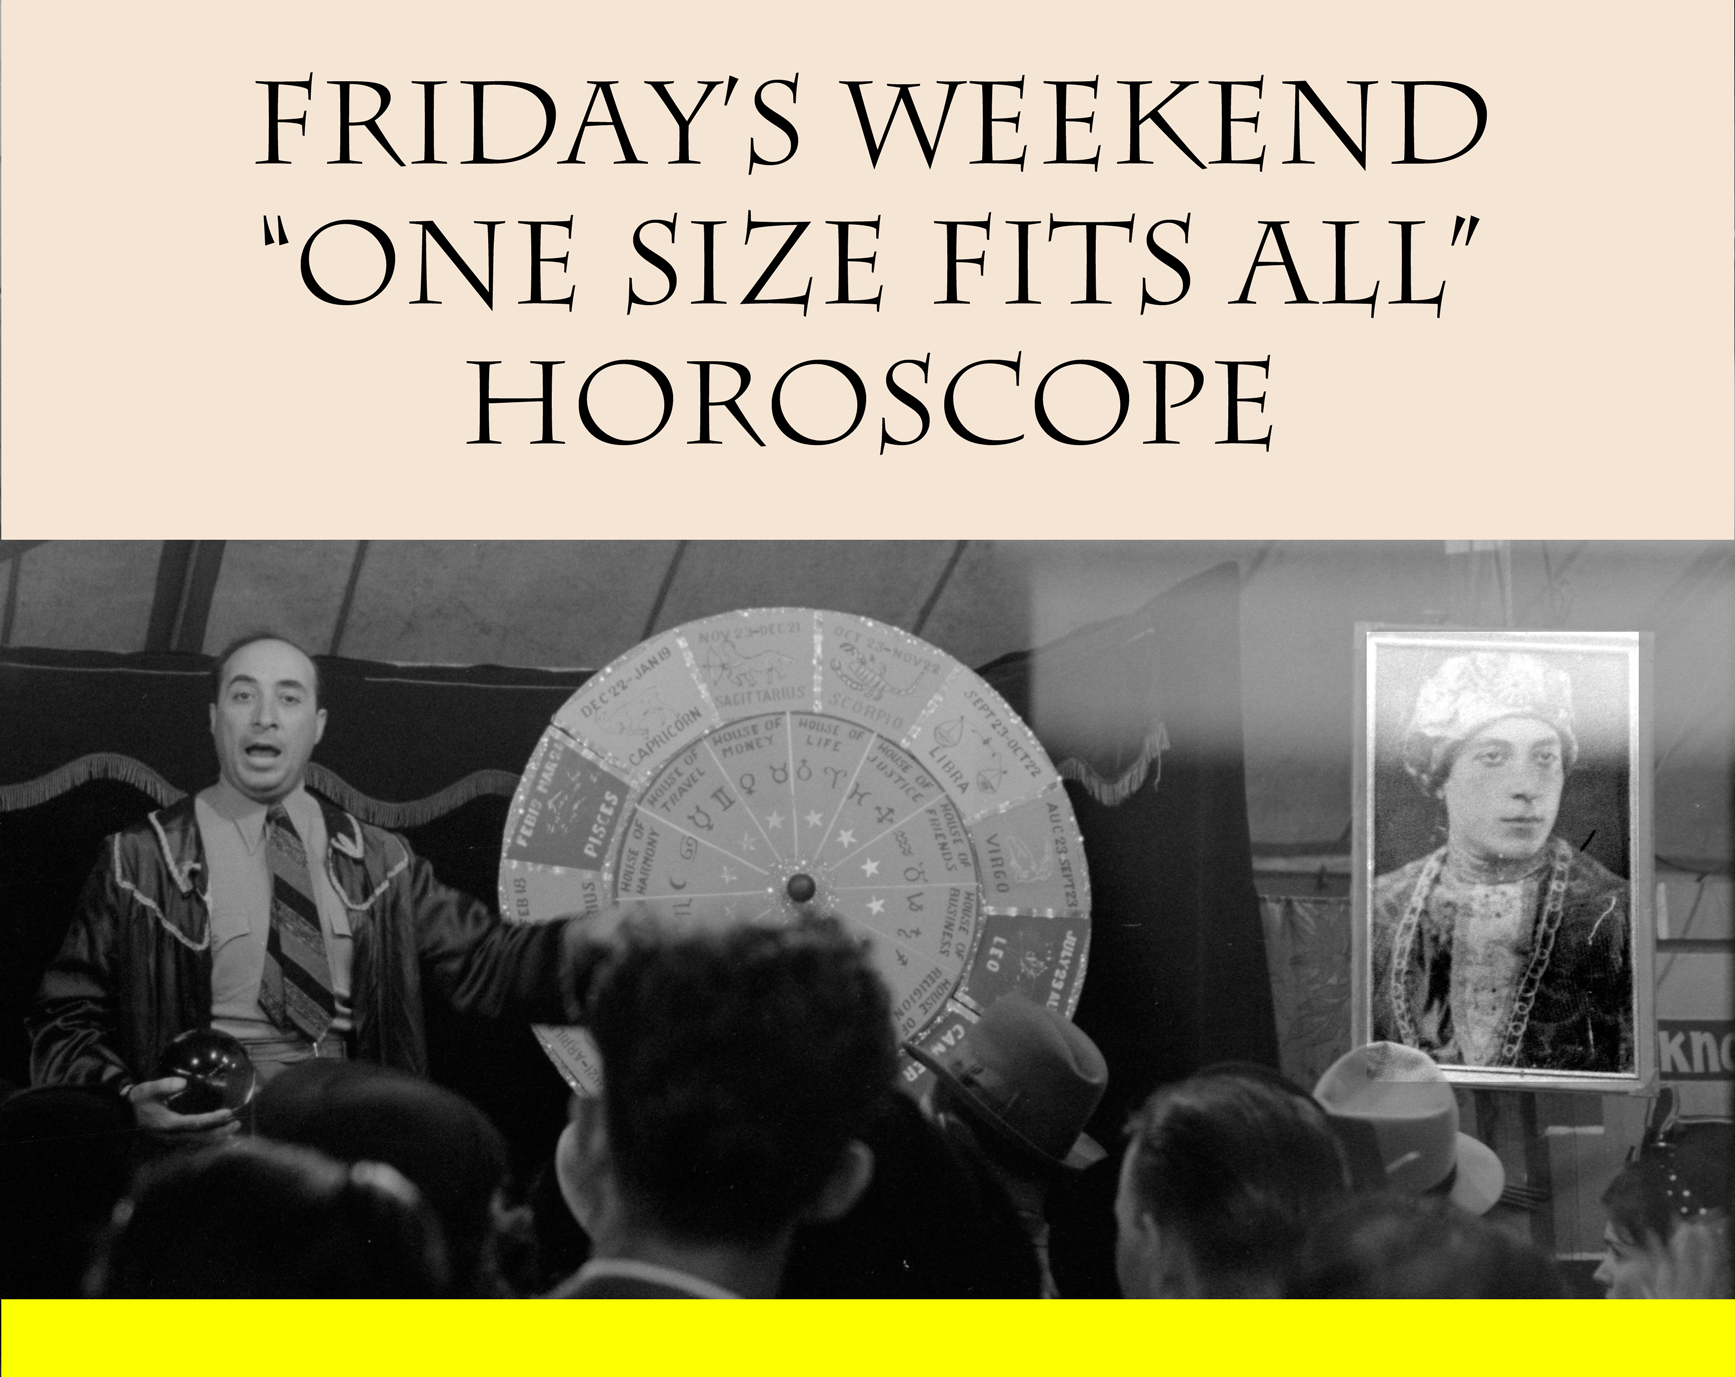 Your Official One Size Fits All Weekend Horoscope